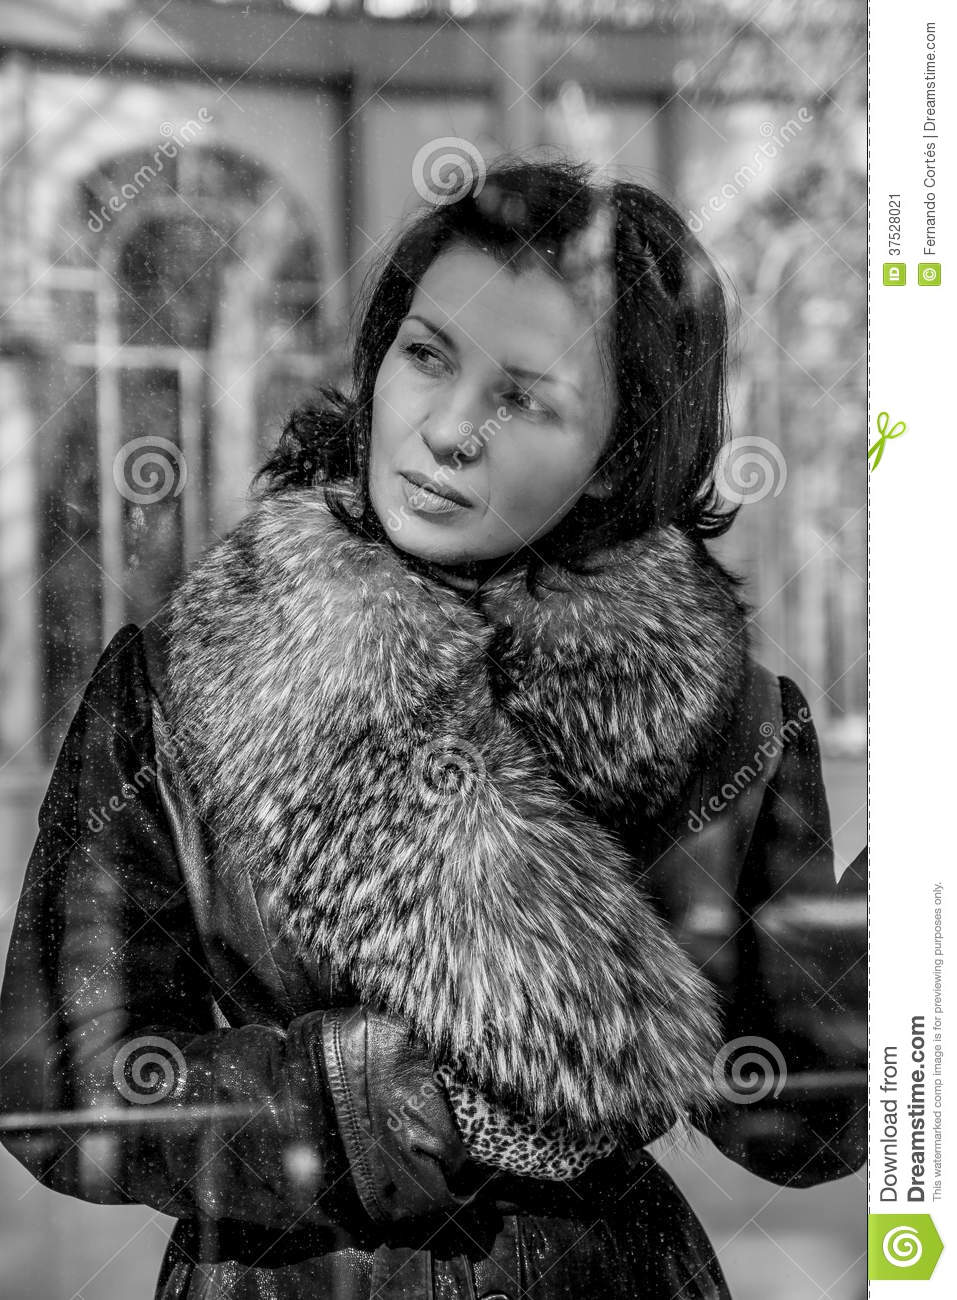 be35e8f03618d Vintage.Beautiful Woman In Winter.Beauty Fashion Model Girl In A ...